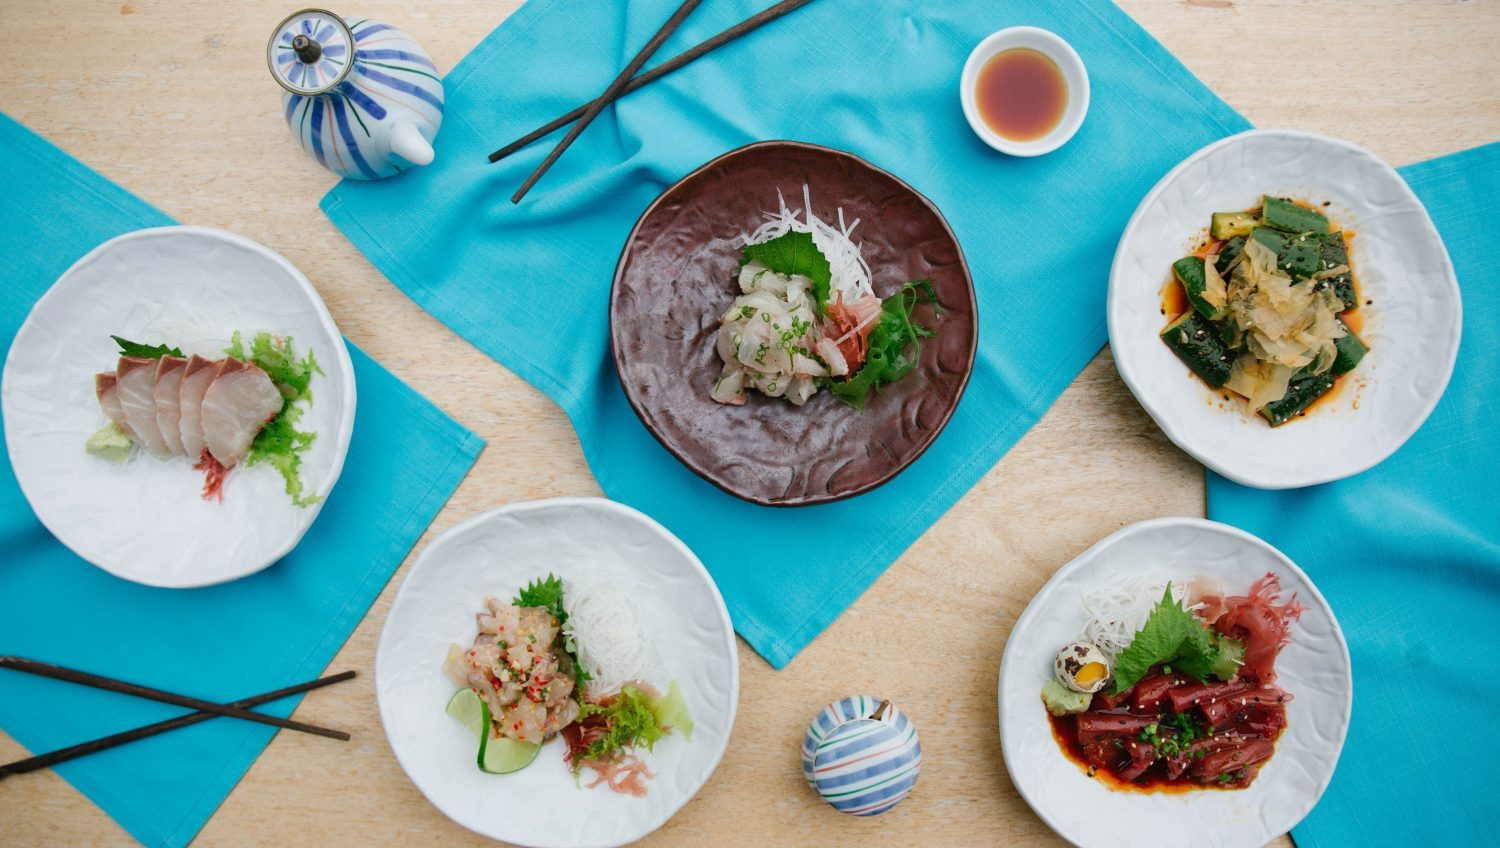 4-Baba-IKI-Luxury-Japanese-Cuisine-in-Phuket1